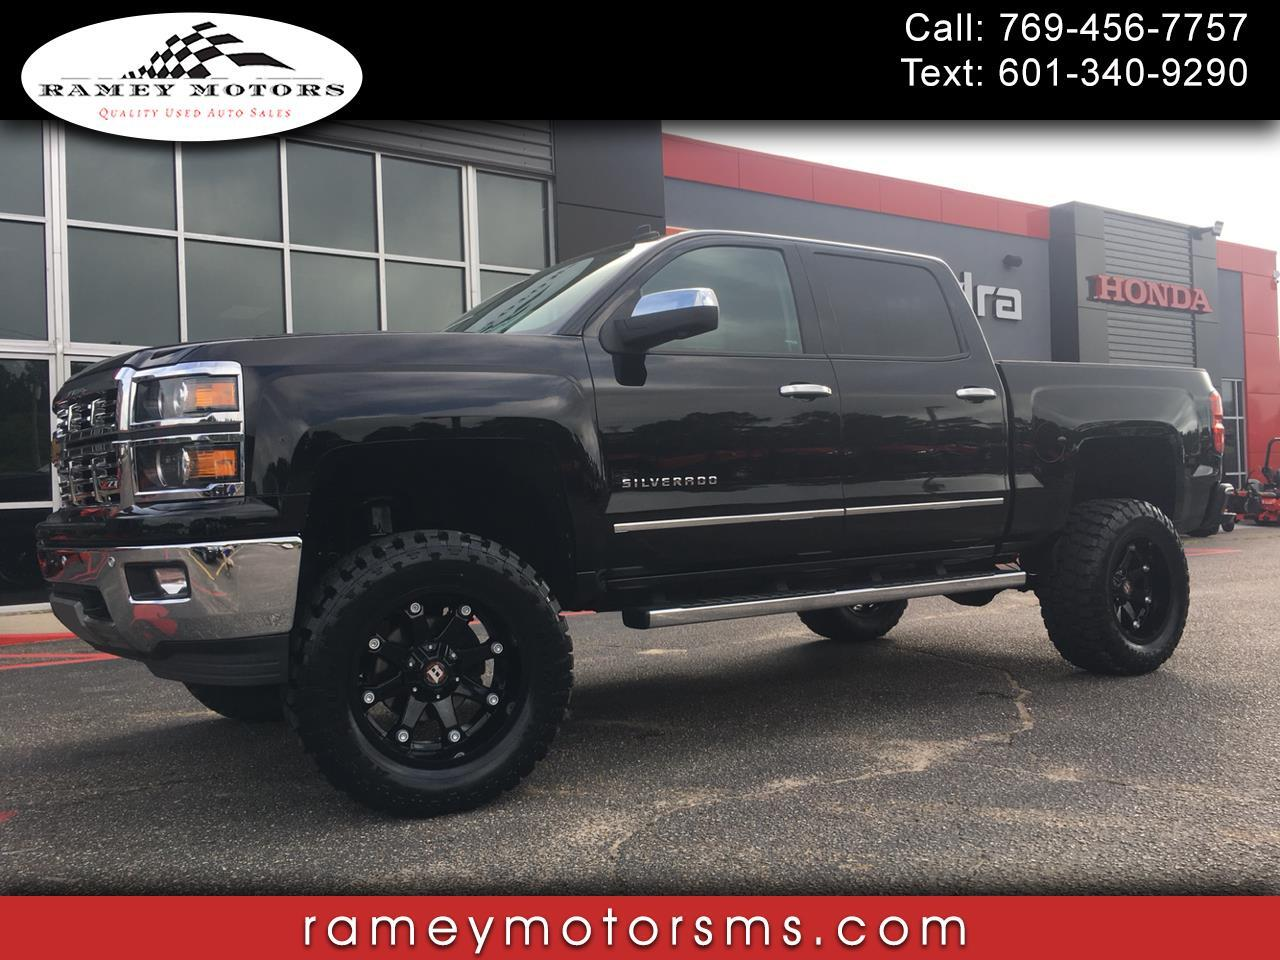 2014 Chevrolet Silverado 1500 4WD CREWCAB LTZ CUSTOM LIFTED